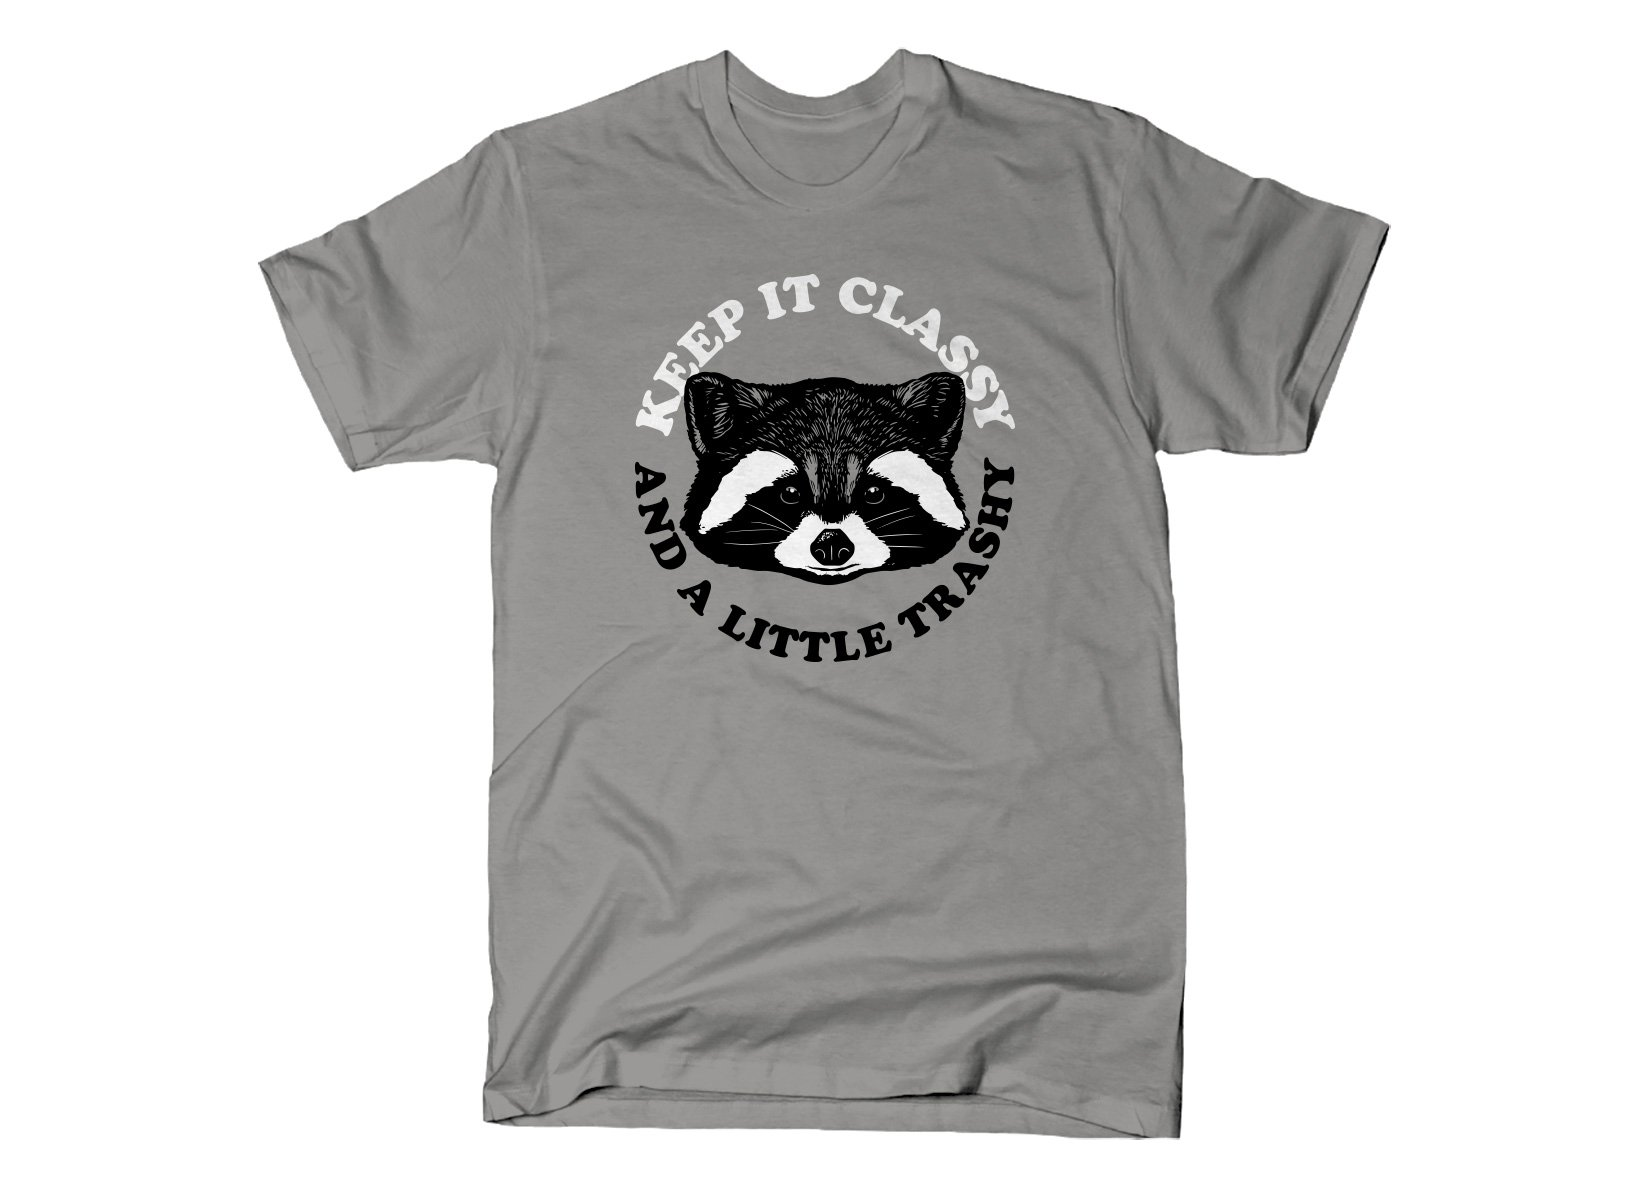 Keep It Classy And A Little Trashy on Mens T-Shirt